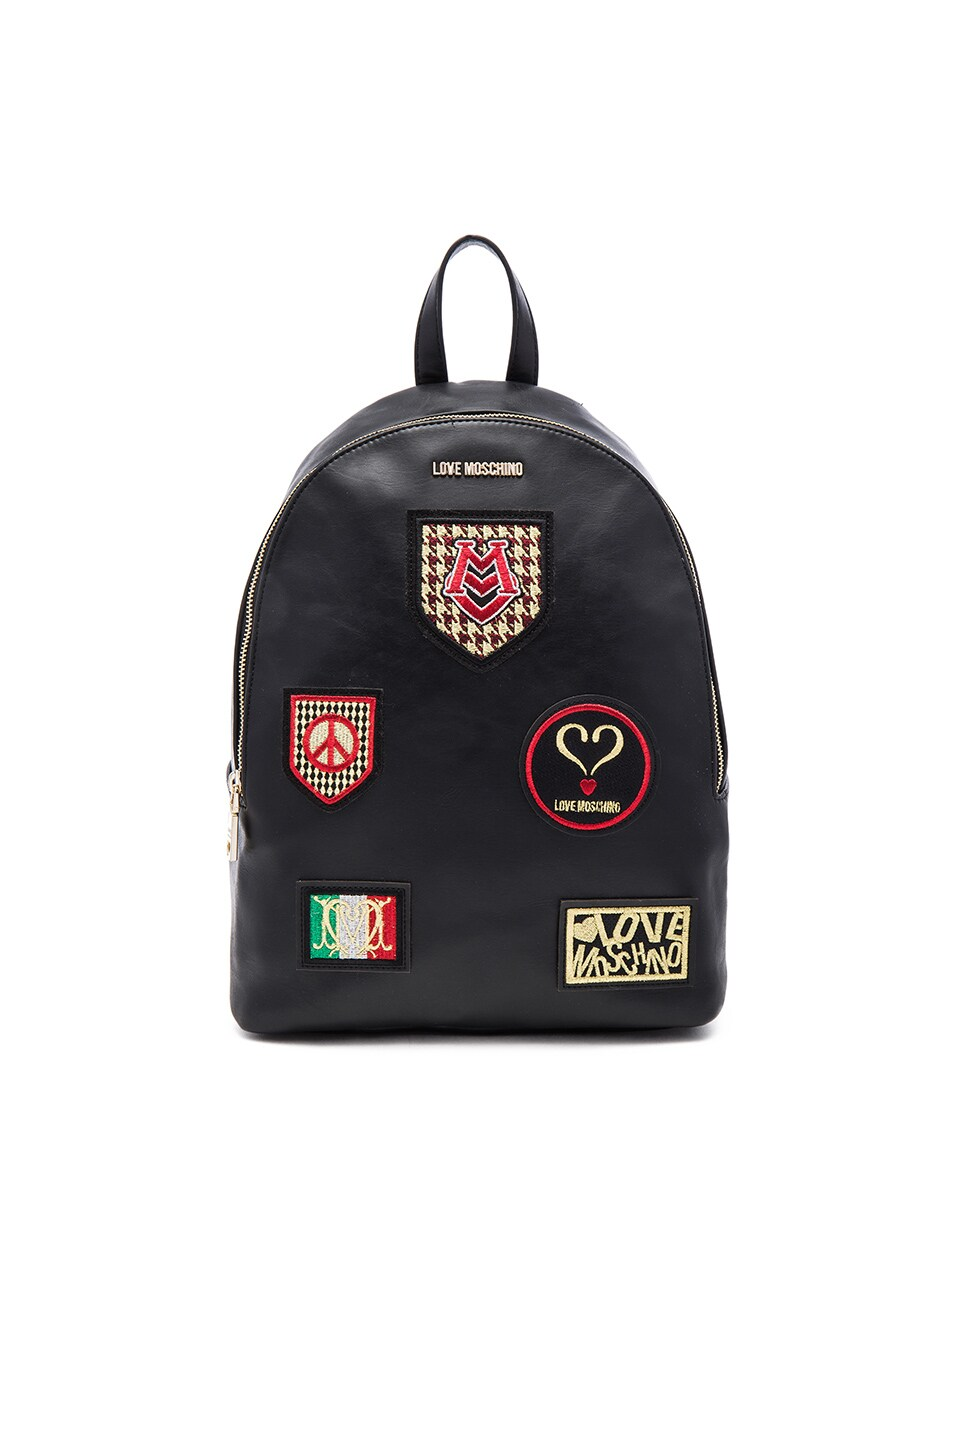 Love Moschino Patch Backpack in Black